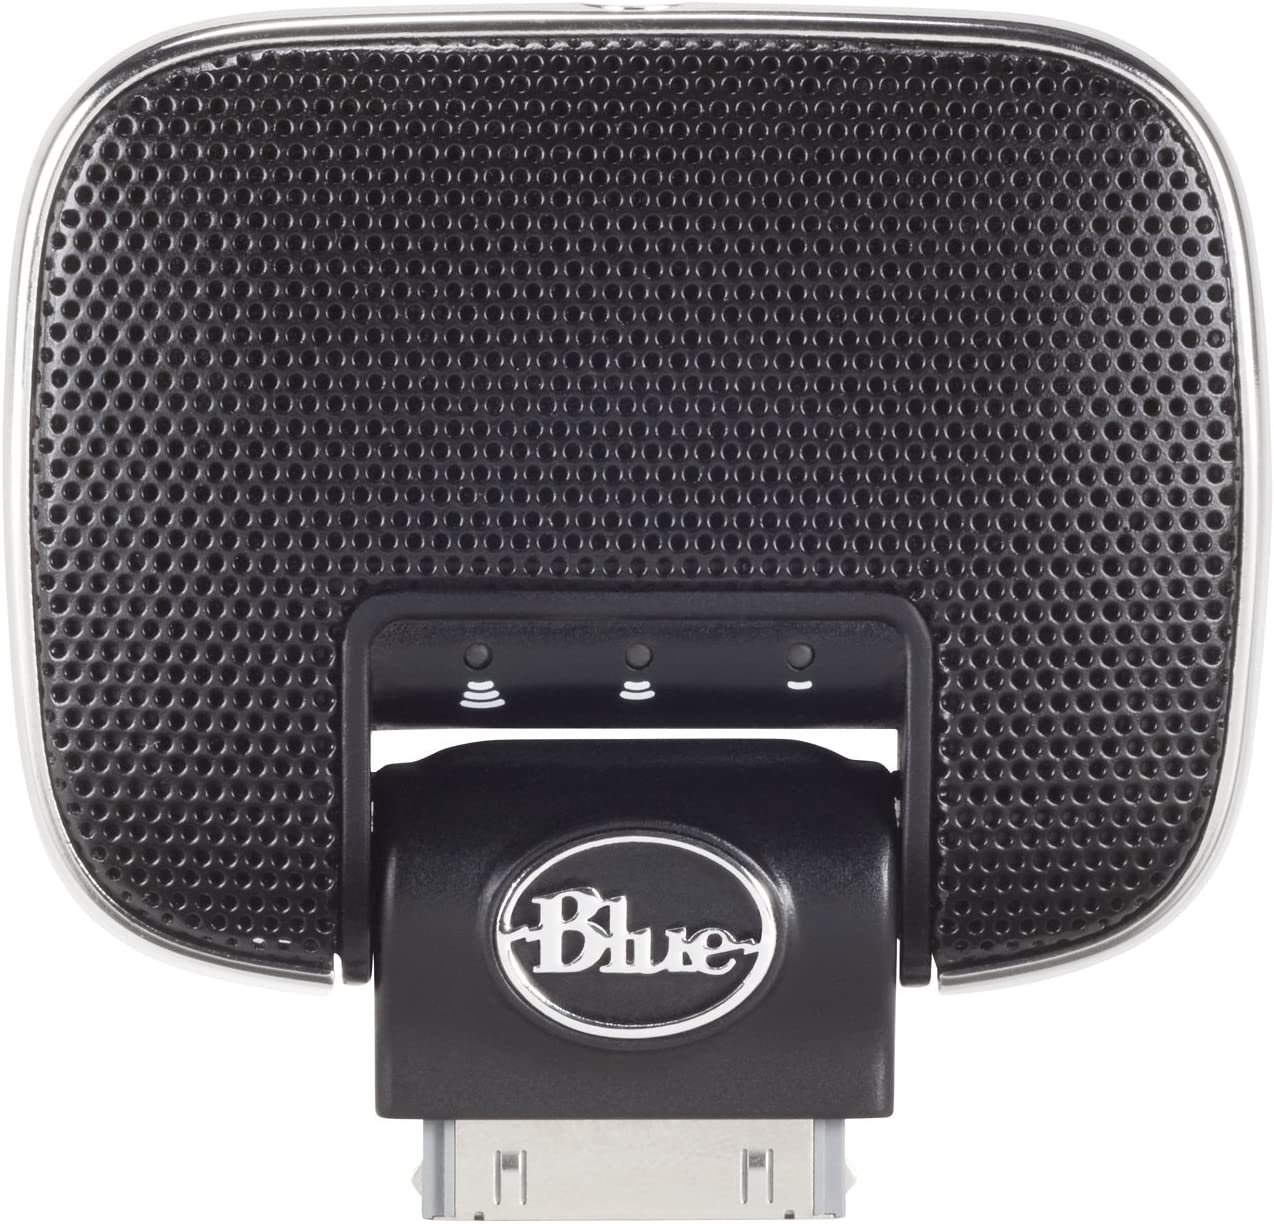 Blue Mikey Digital iPhone 4th Generation USB/iOS Microphone